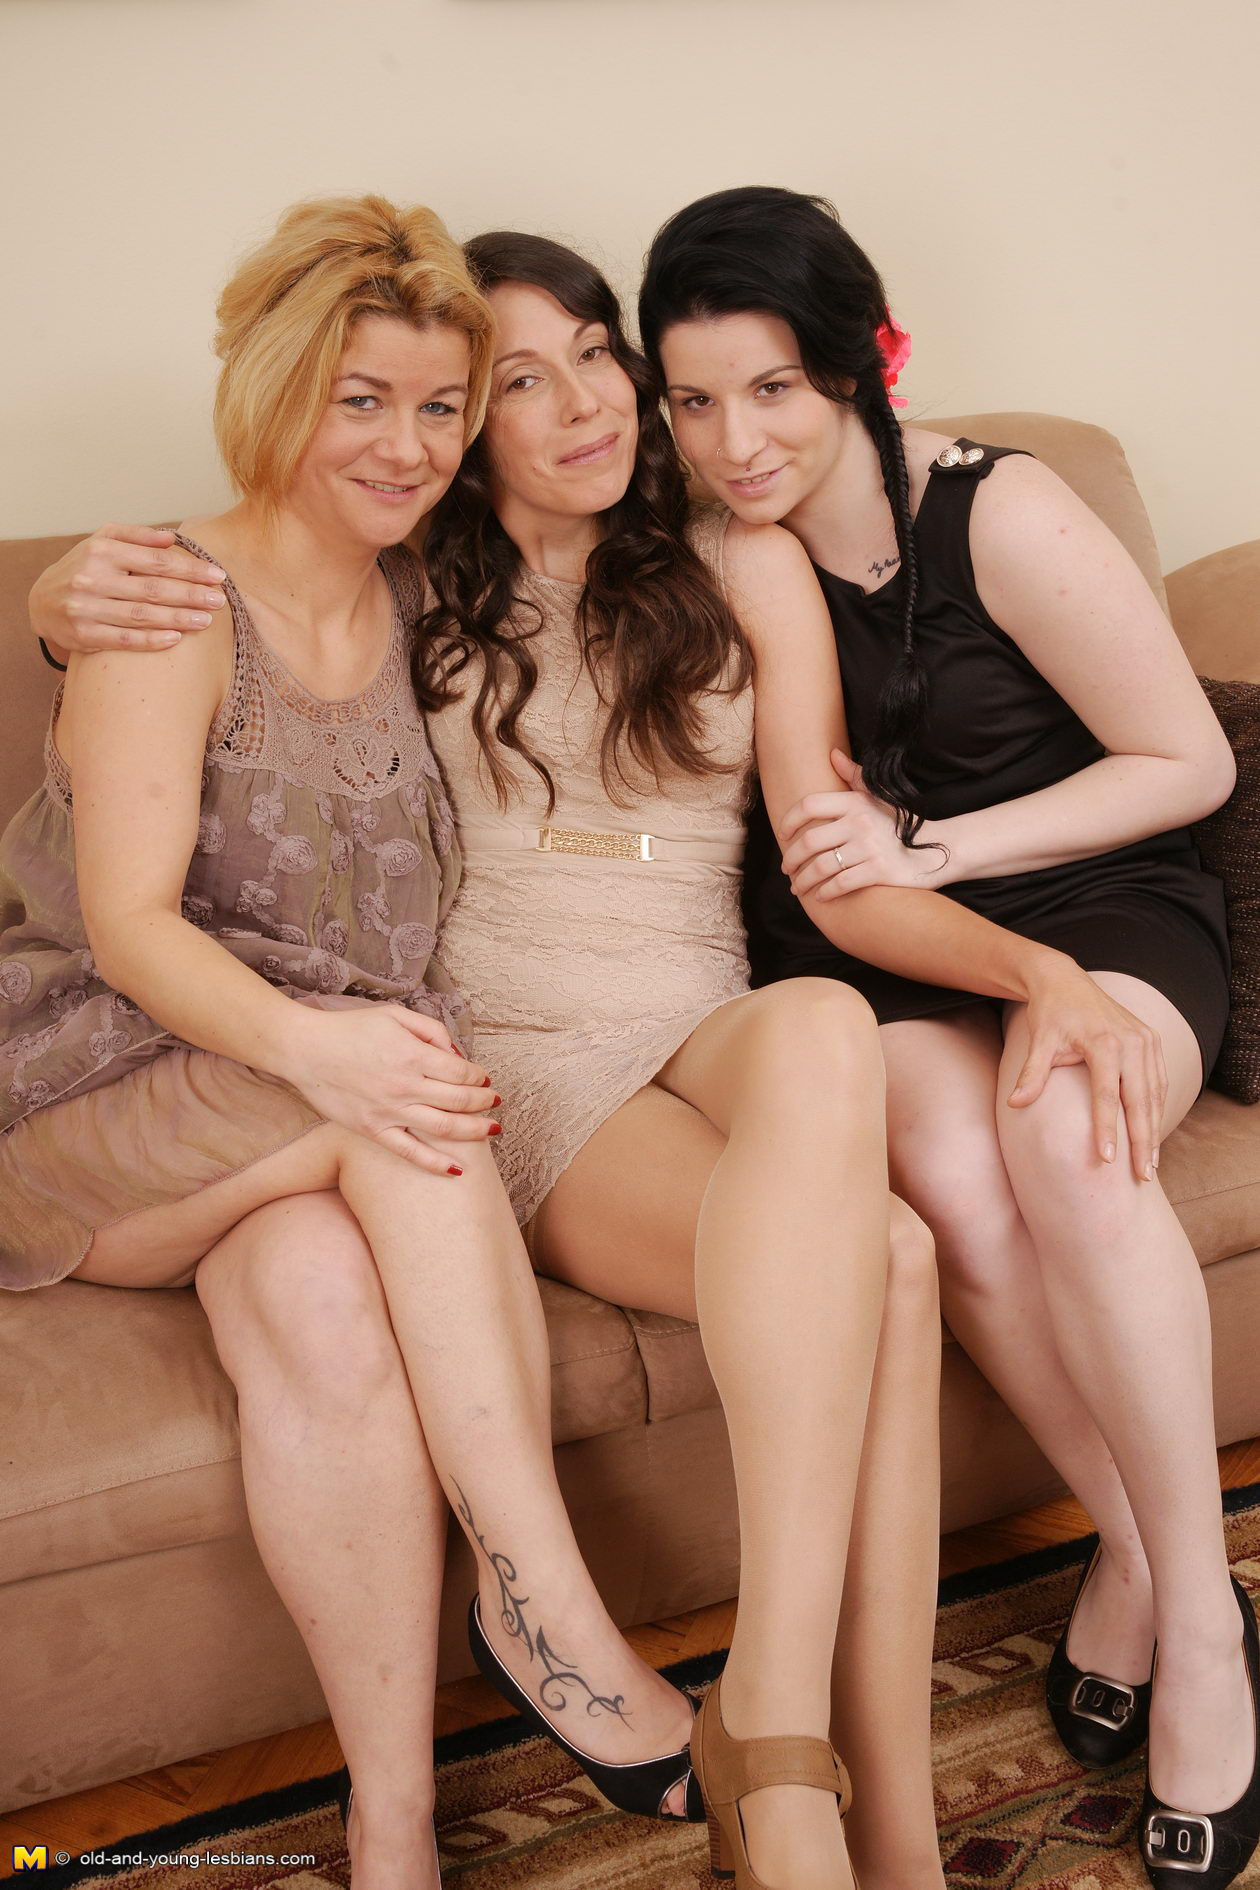 affiliates old and young lesbians free 4398 70305